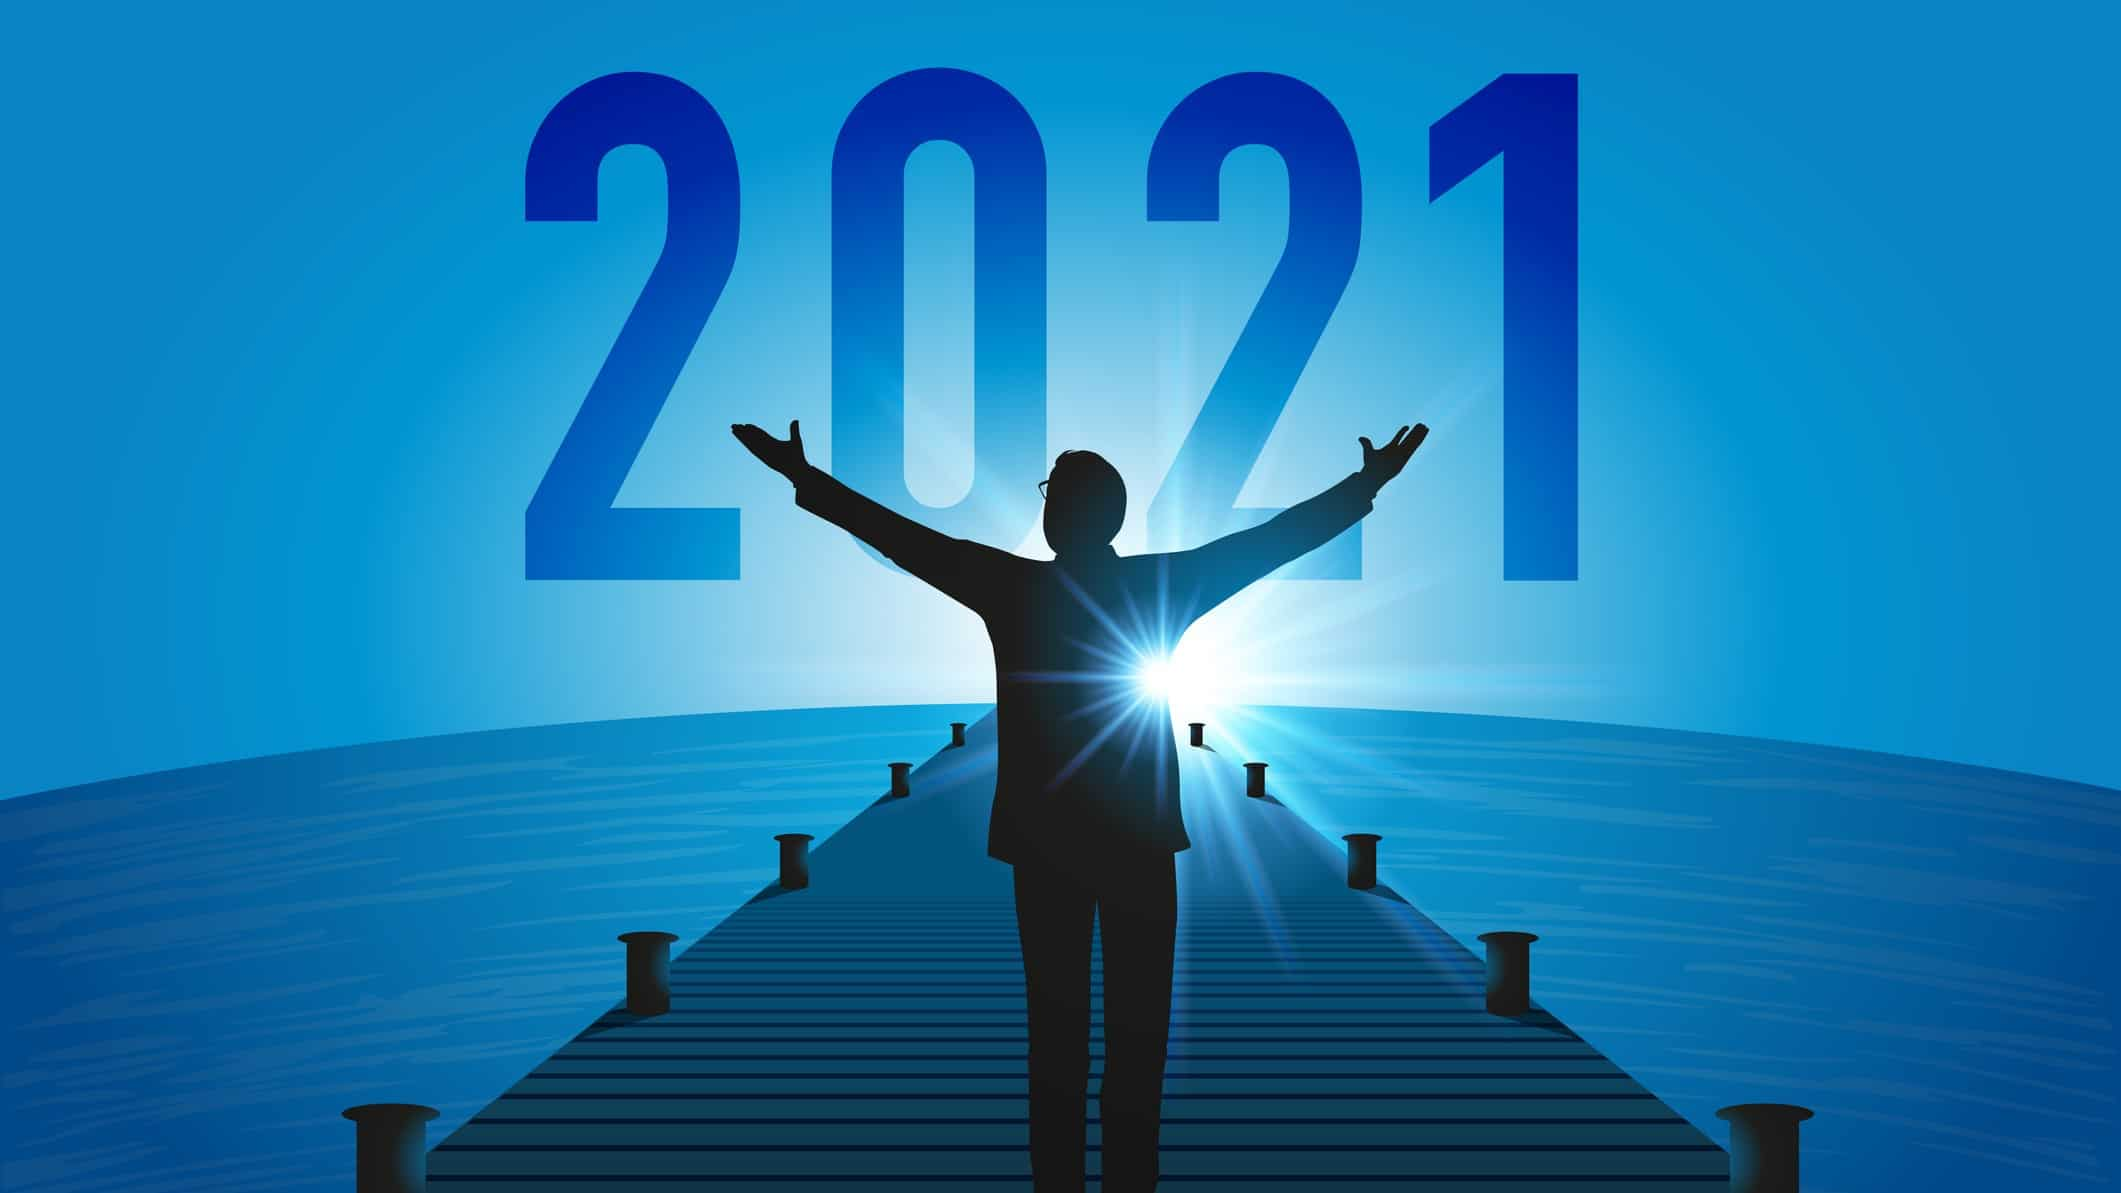 a man raise his arms to the sun as it rises with the year 2021 in the background, indicating a bright future on the ASX share market